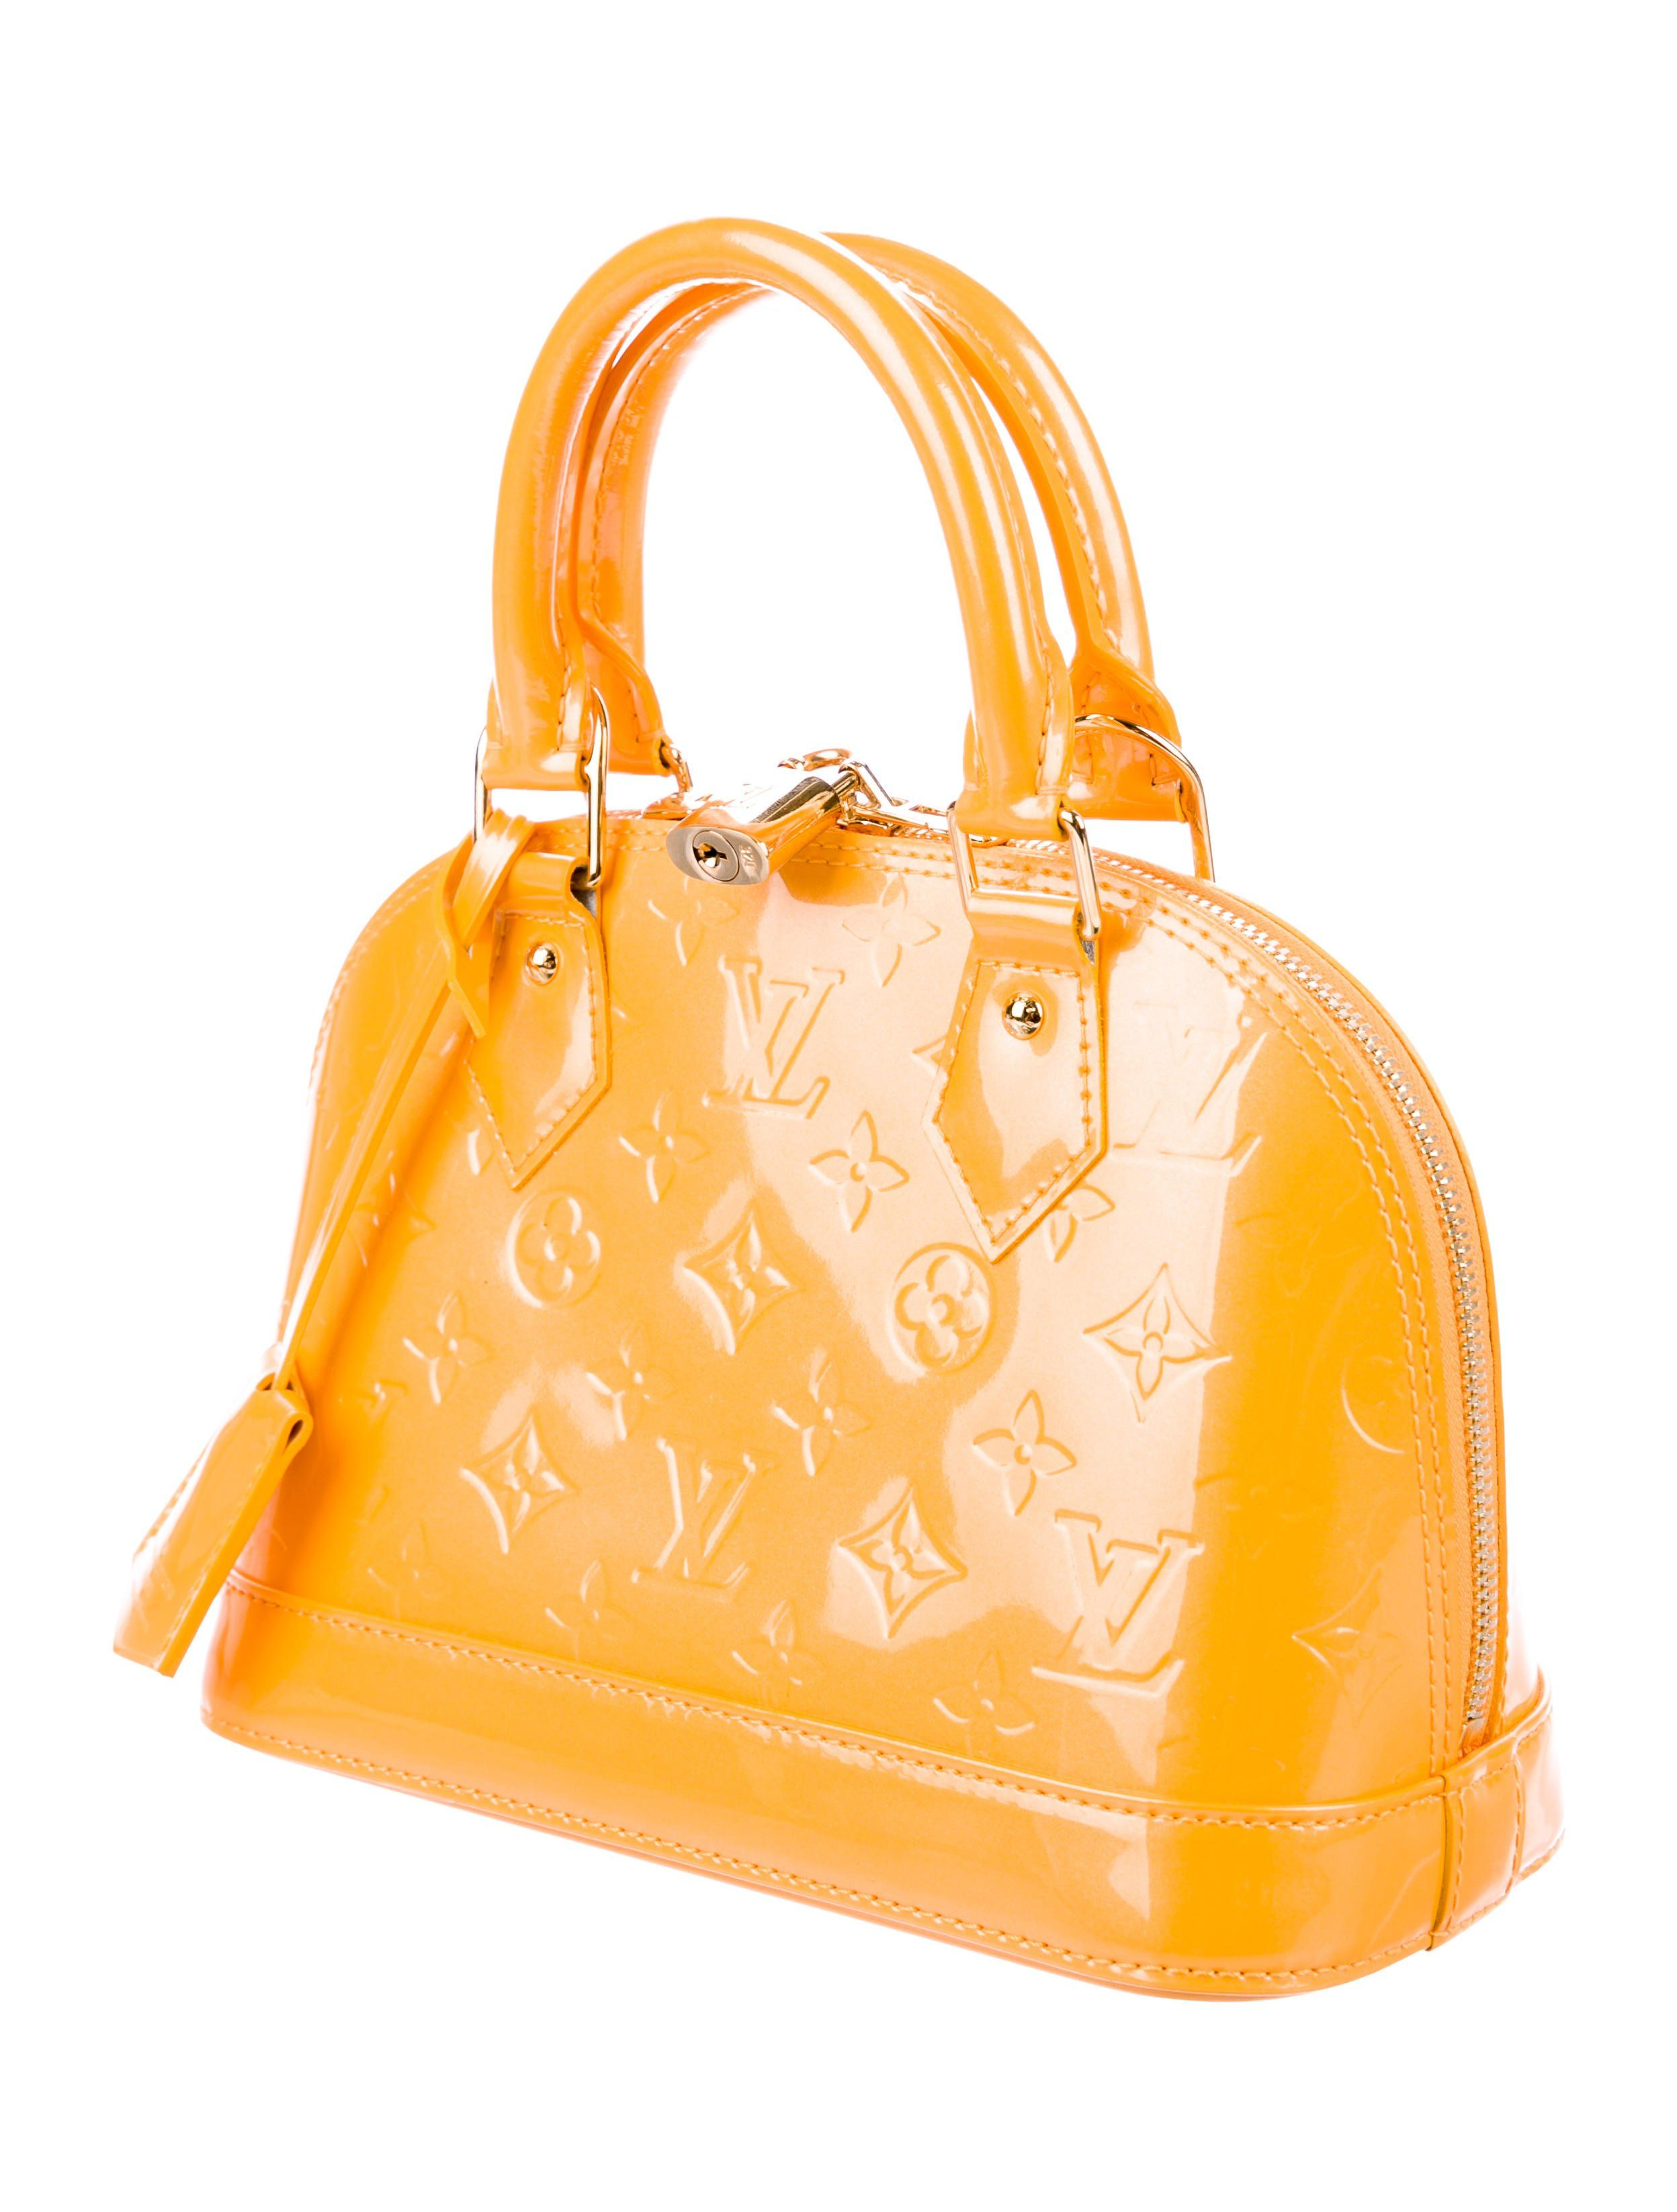 e12f2ba4d1 Mimosa monogram Vernis leather Louis Vuitton Alma BB with brass hardware,  dual rolled top handles, single detachable flat shoulder strap, protective  feet at